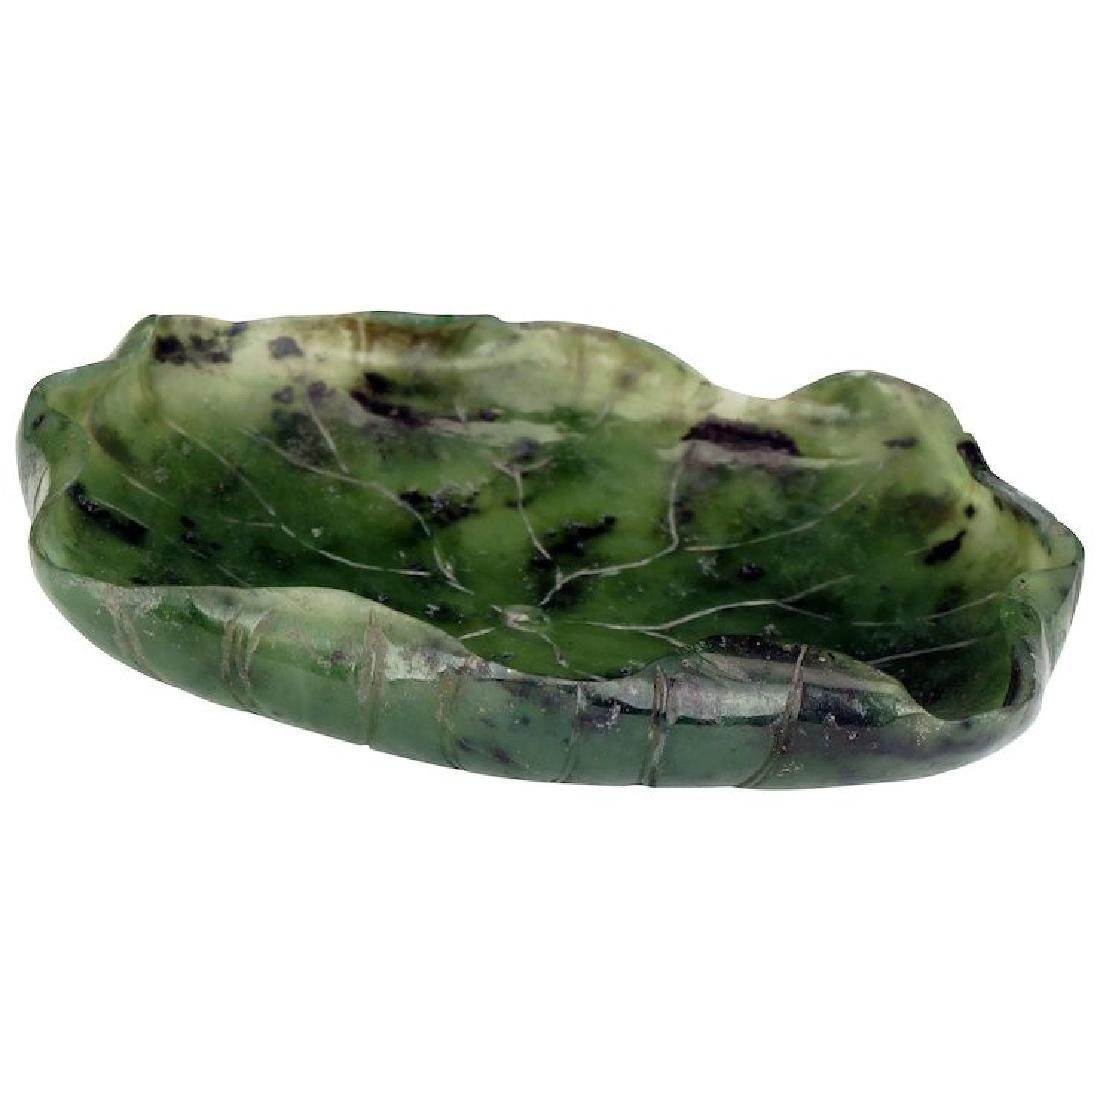 Chinese blue green jade brush wash in the shape of a